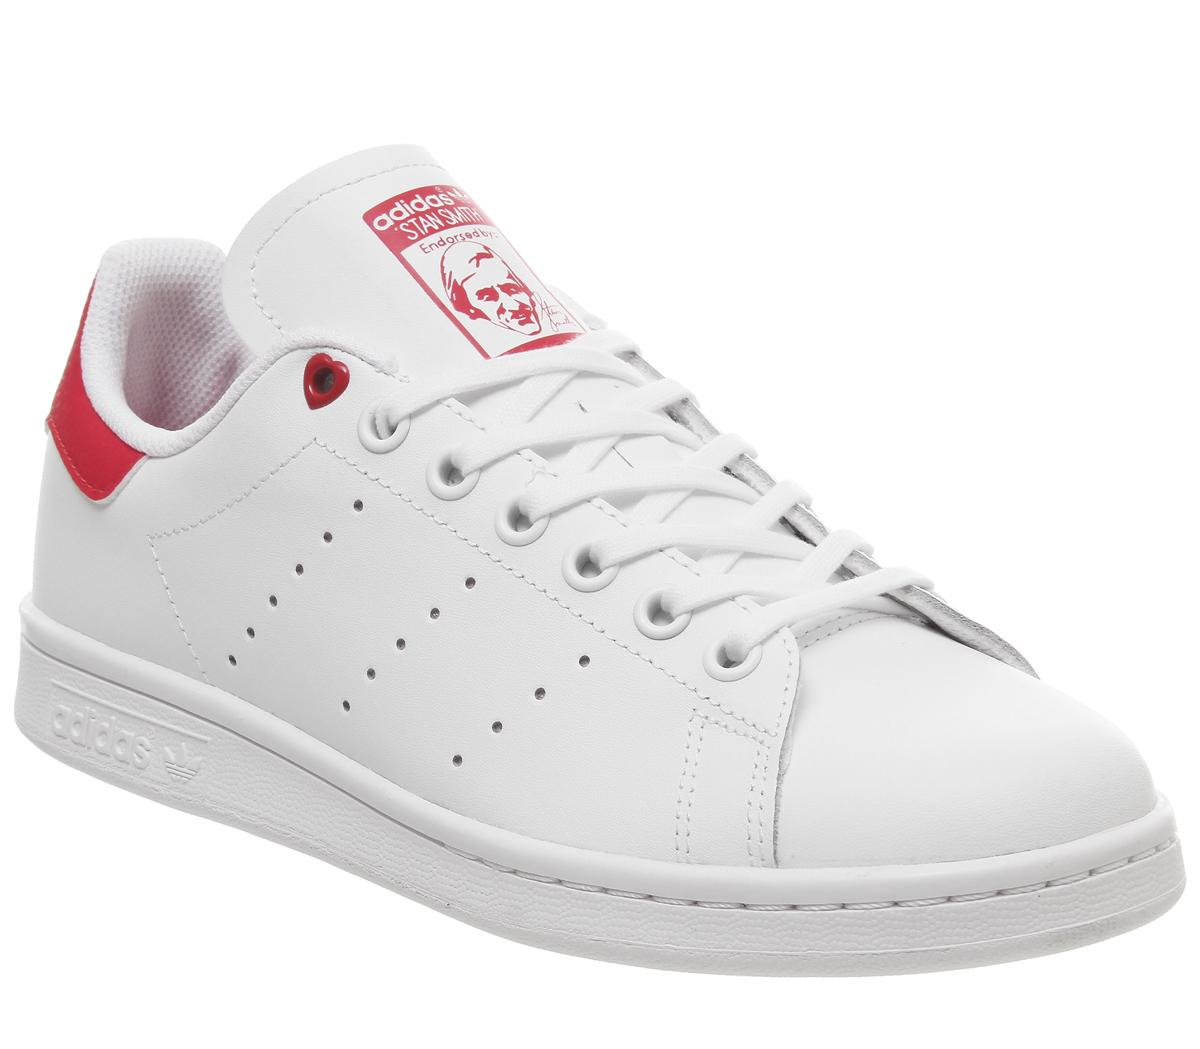 proteína inicial pensión  adidas Stan Smith Gs Trainers White White Red - Unisex